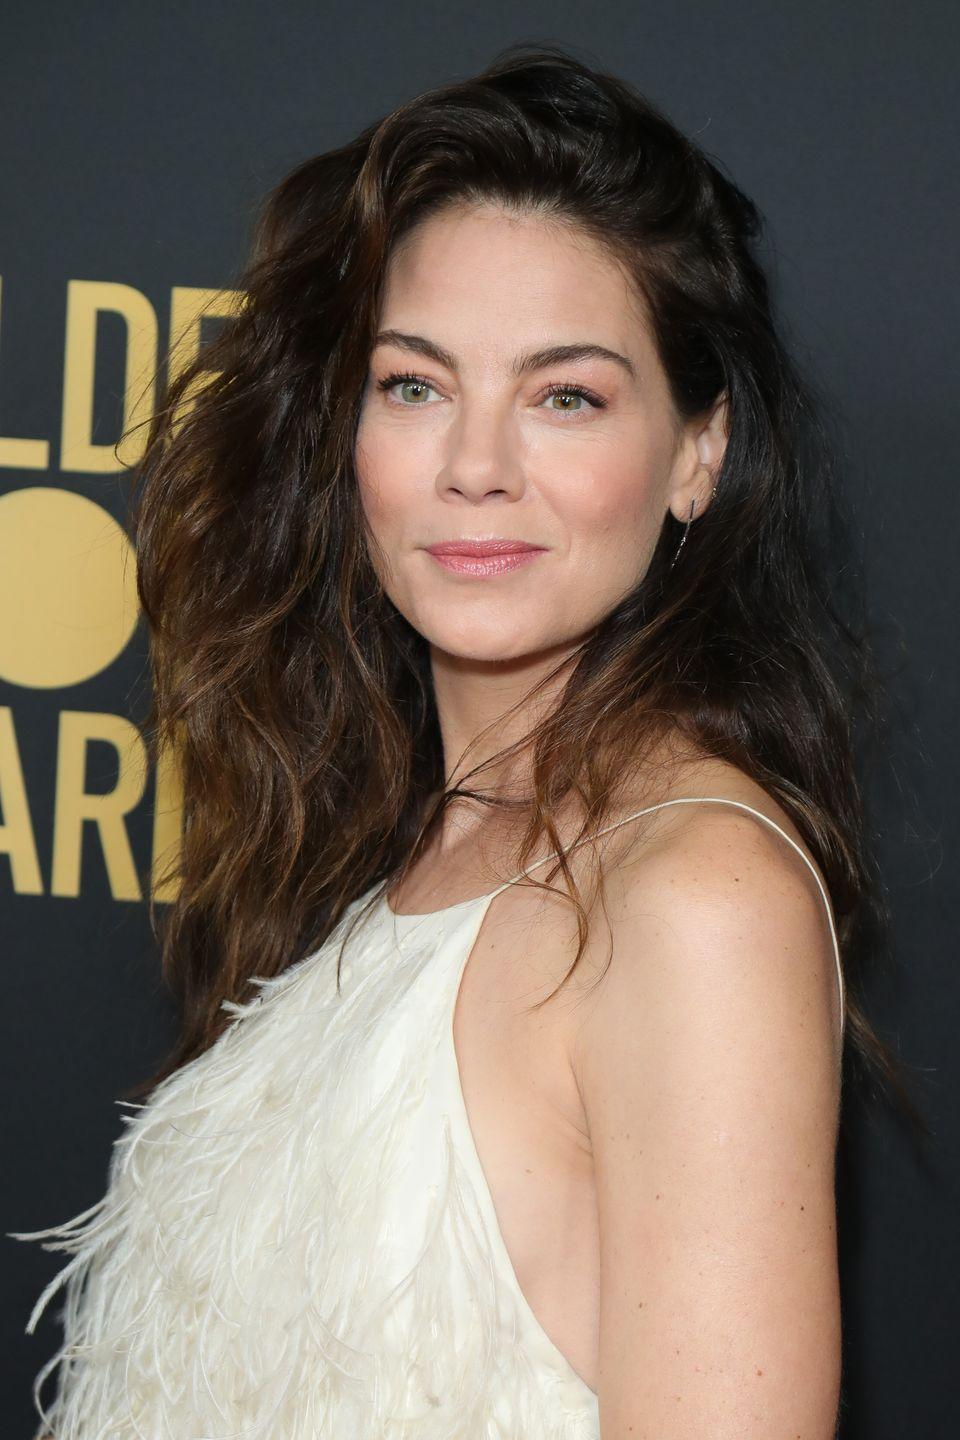 """<p>Not only was Michelle Monaghan <a href=""""https://www.imdb.com/title/tt0365737/trivia"""" rel=""""nofollow noopener"""" target=""""_blank"""" data-ylk=""""slk:completely edited out"""" class=""""link rapid-noclick-resp"""">completely edited out </a>of the 2005 film, <em>Syriana,</em> but she's familiar with getting the short end of the stick in the editing room for other projects too. The actress reportedly saw her roles reduced in post-production in <em>Dangerous </em><em>Liaisons</em> and <em>The Bourne Supremacy</em>. </p>"""